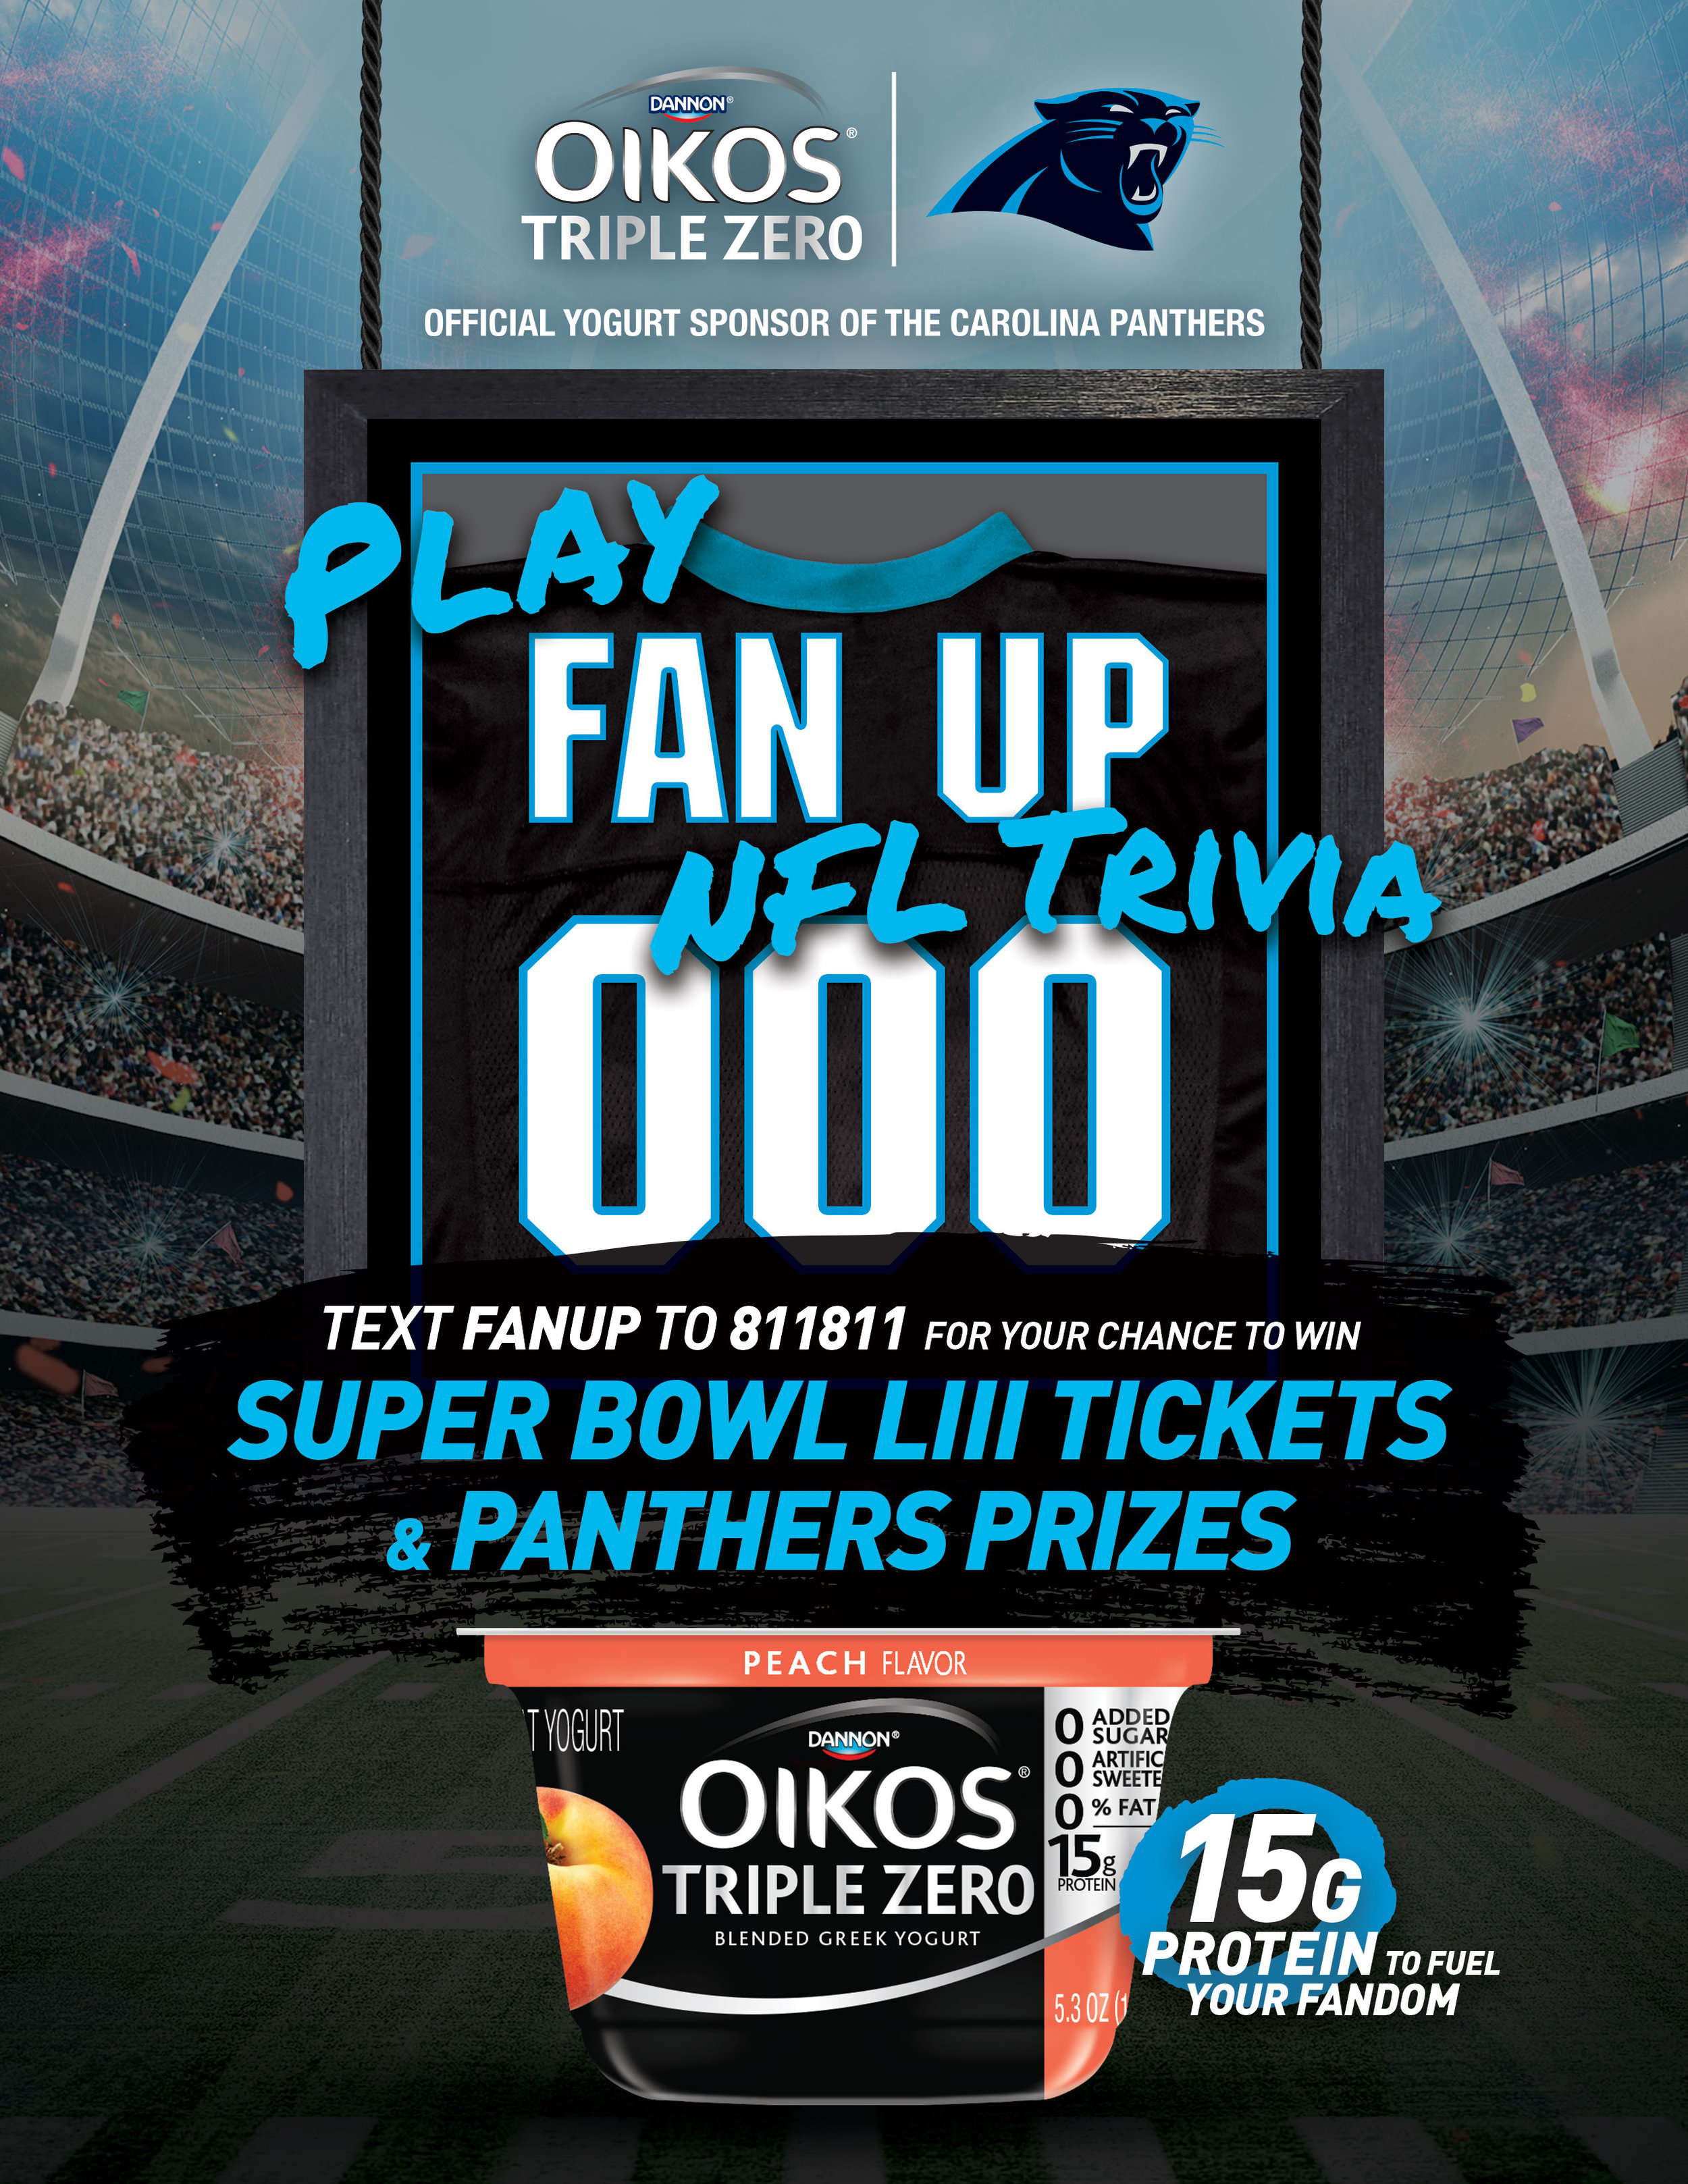 Q3-OIKOS_NFL_Panthers_3.jpg